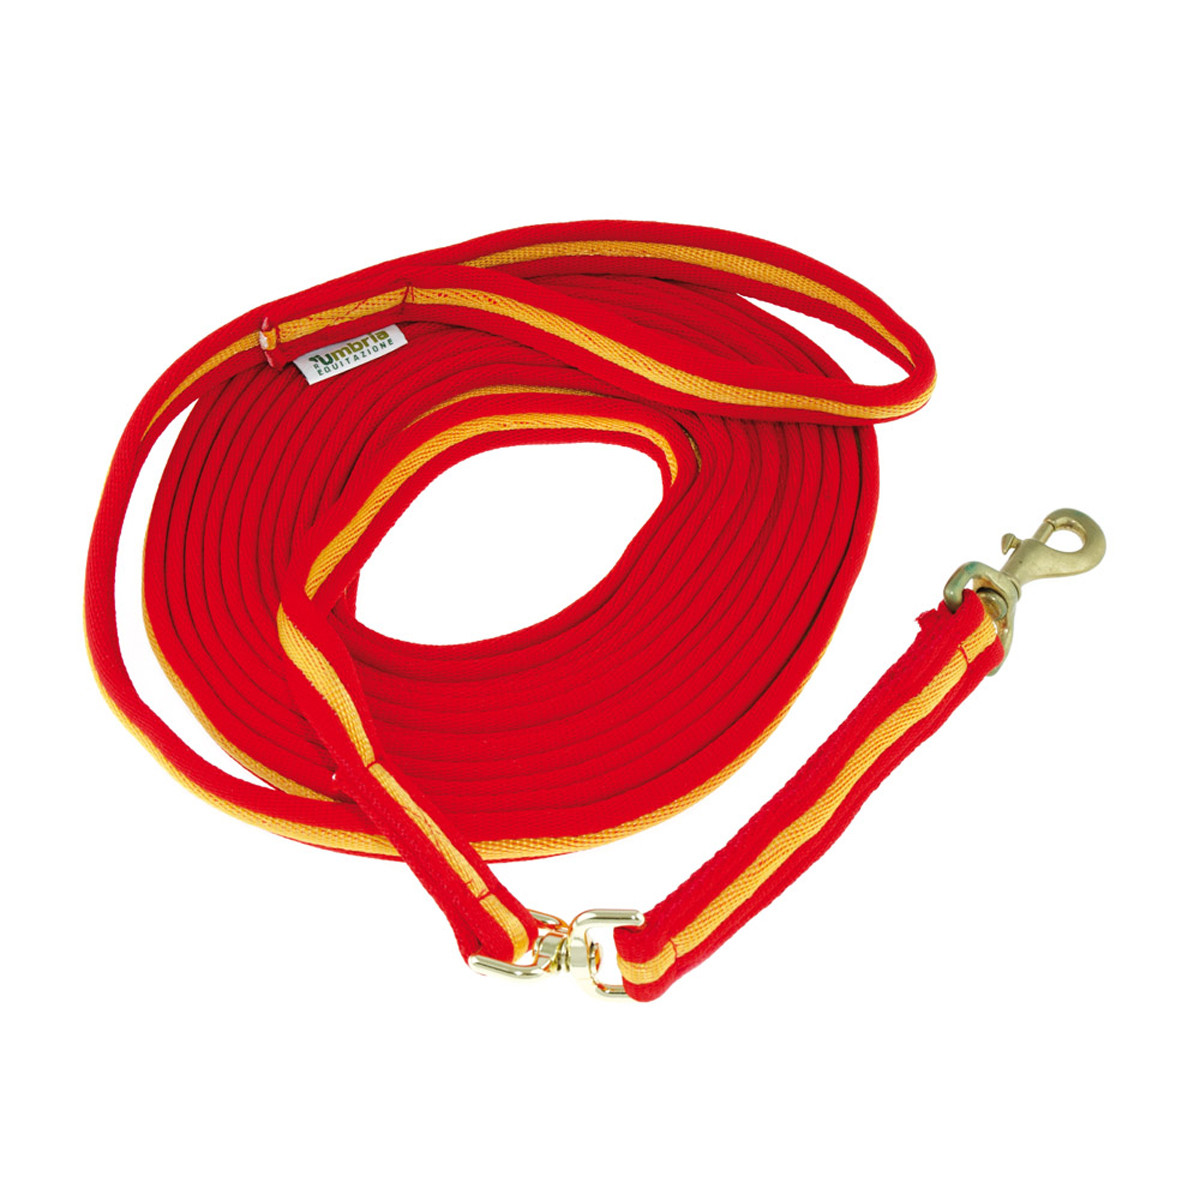 Padded Nylon Lunge Rein with Hand Loop